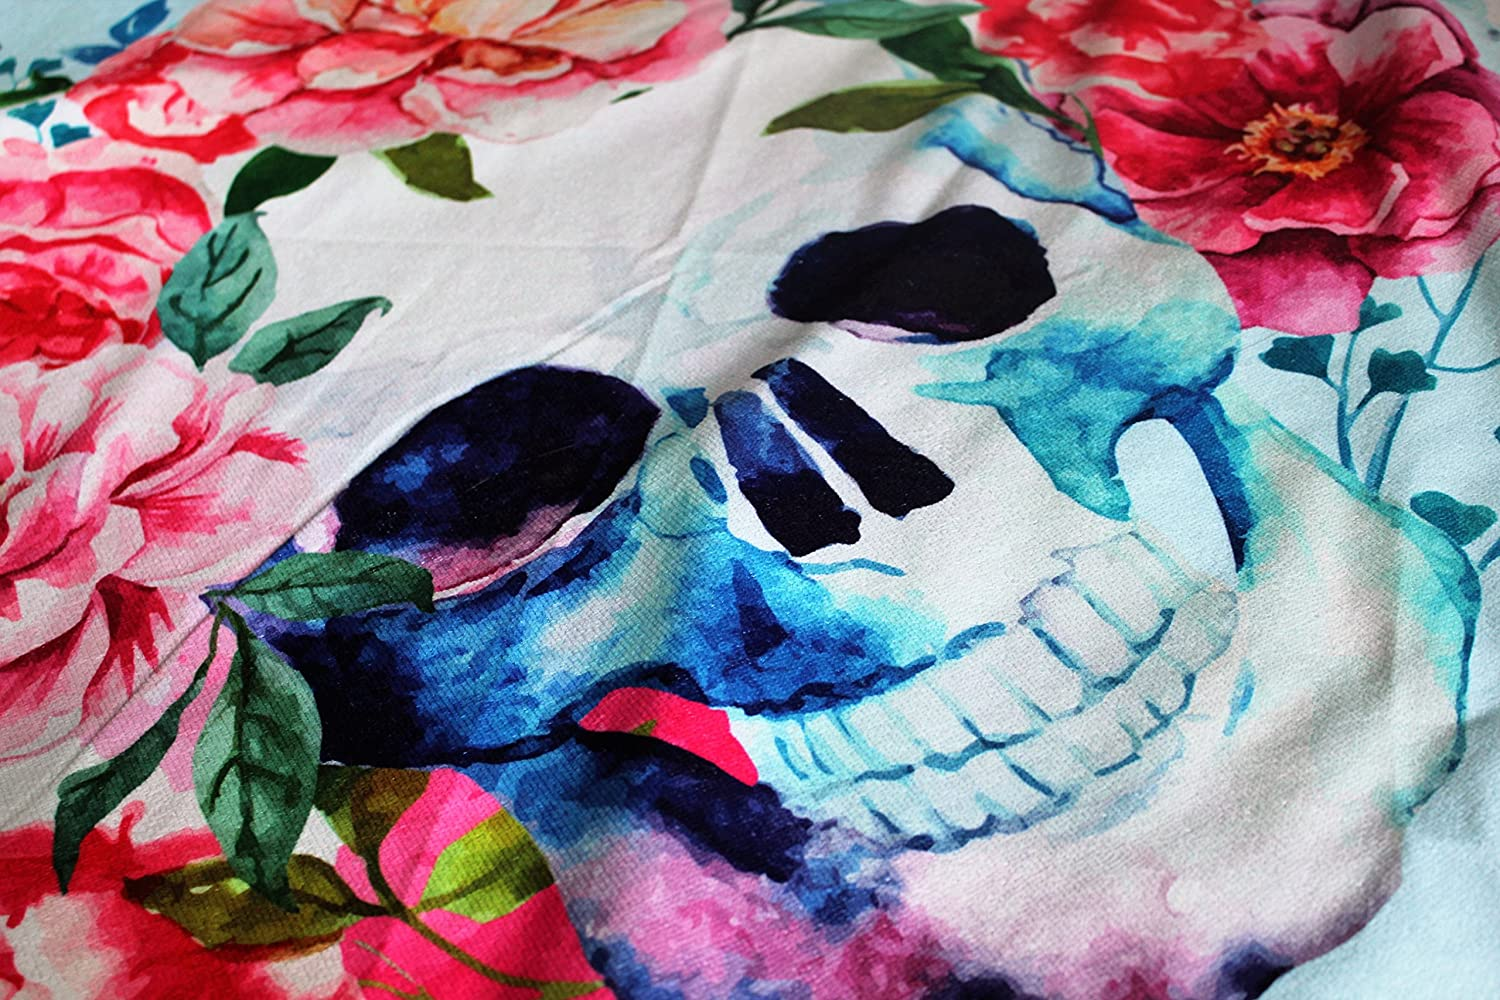 Amazon.com: Skull Thick Round Beach Towel Blanket | Throw Indian ...